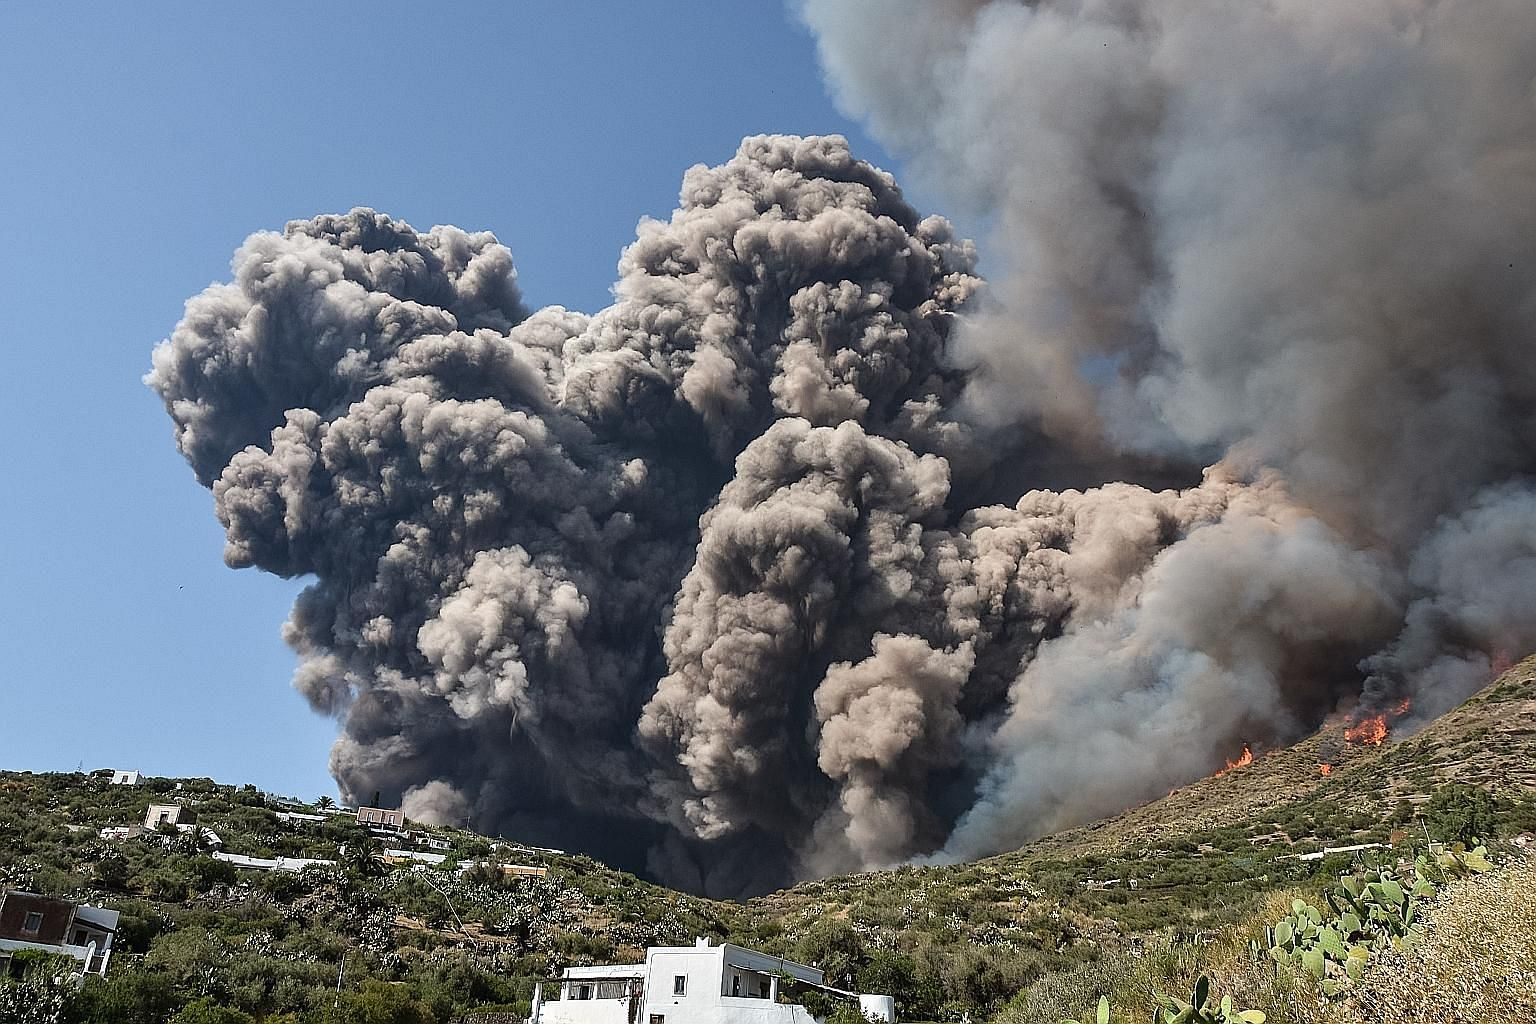 Smoke billowing across the hillside after the Stromboli volcano in Italy erupted on Wednesday, killing a hiker and sending tourists fleeing from the small island. Emergency workers yesterday brushed and scooped volcanic cinders from streets and the t